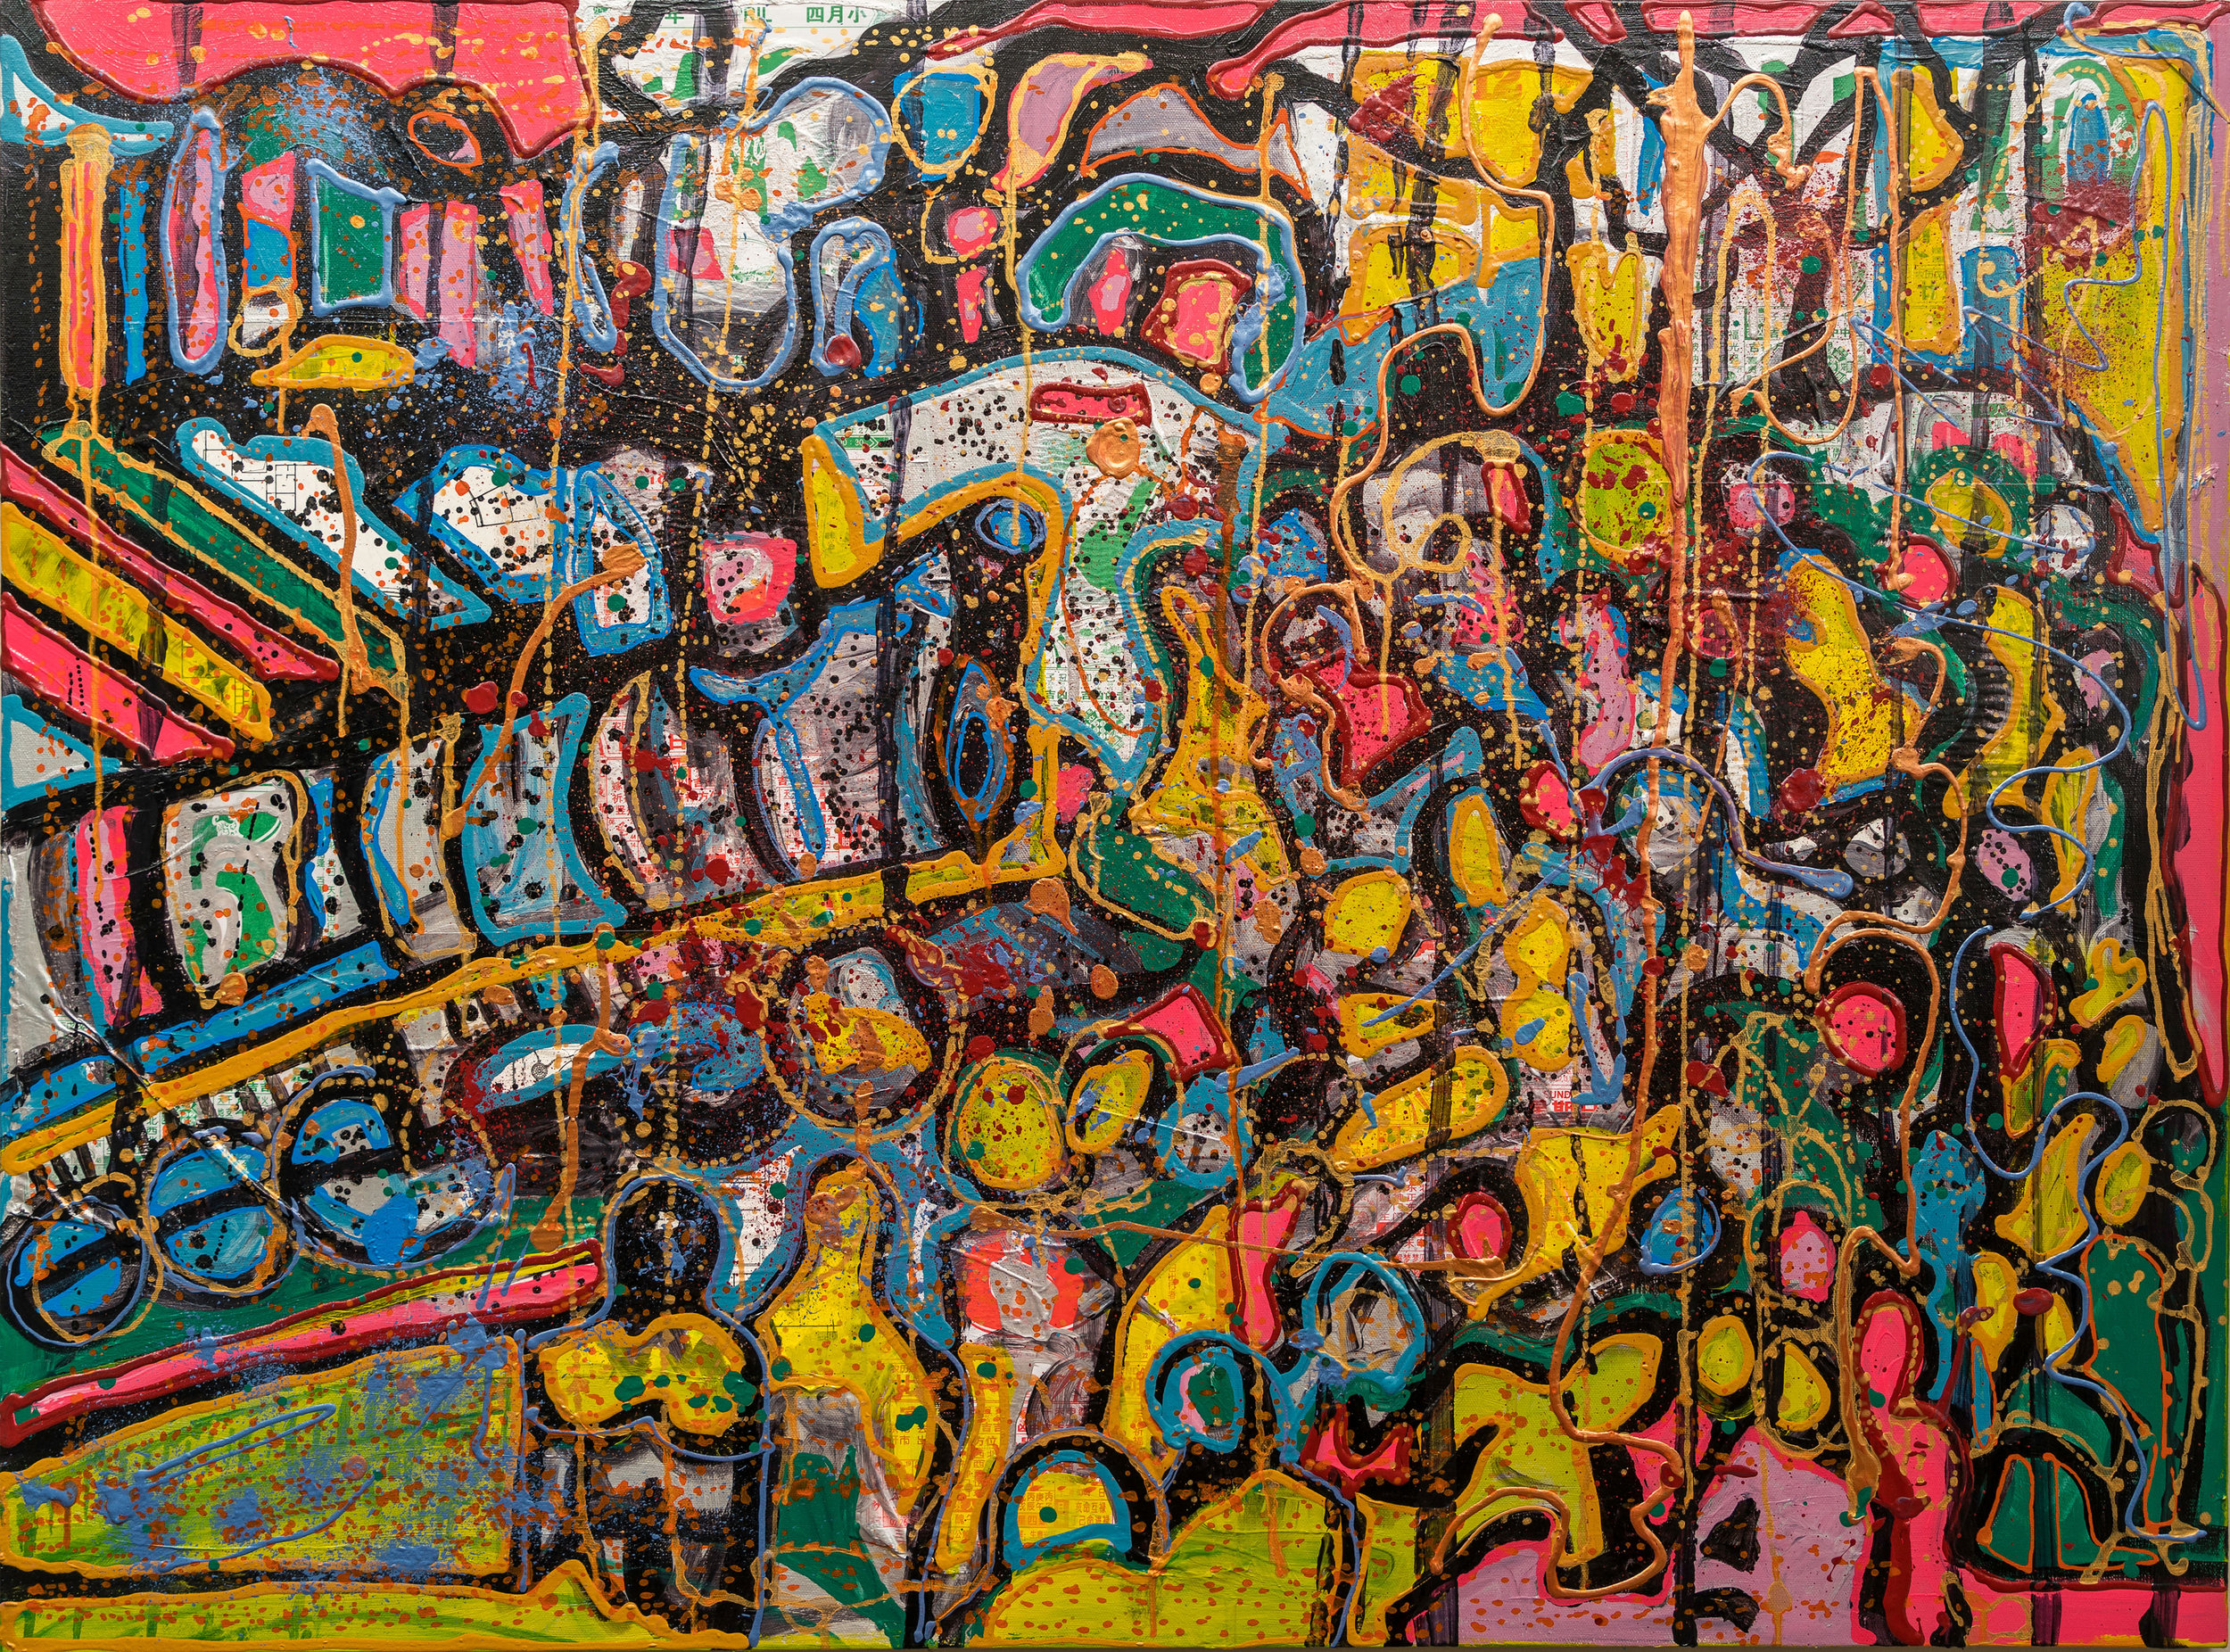 Enpsychlopedia: The People's Victory - 2018 - 96cm x 126cm - mixed media on canvas